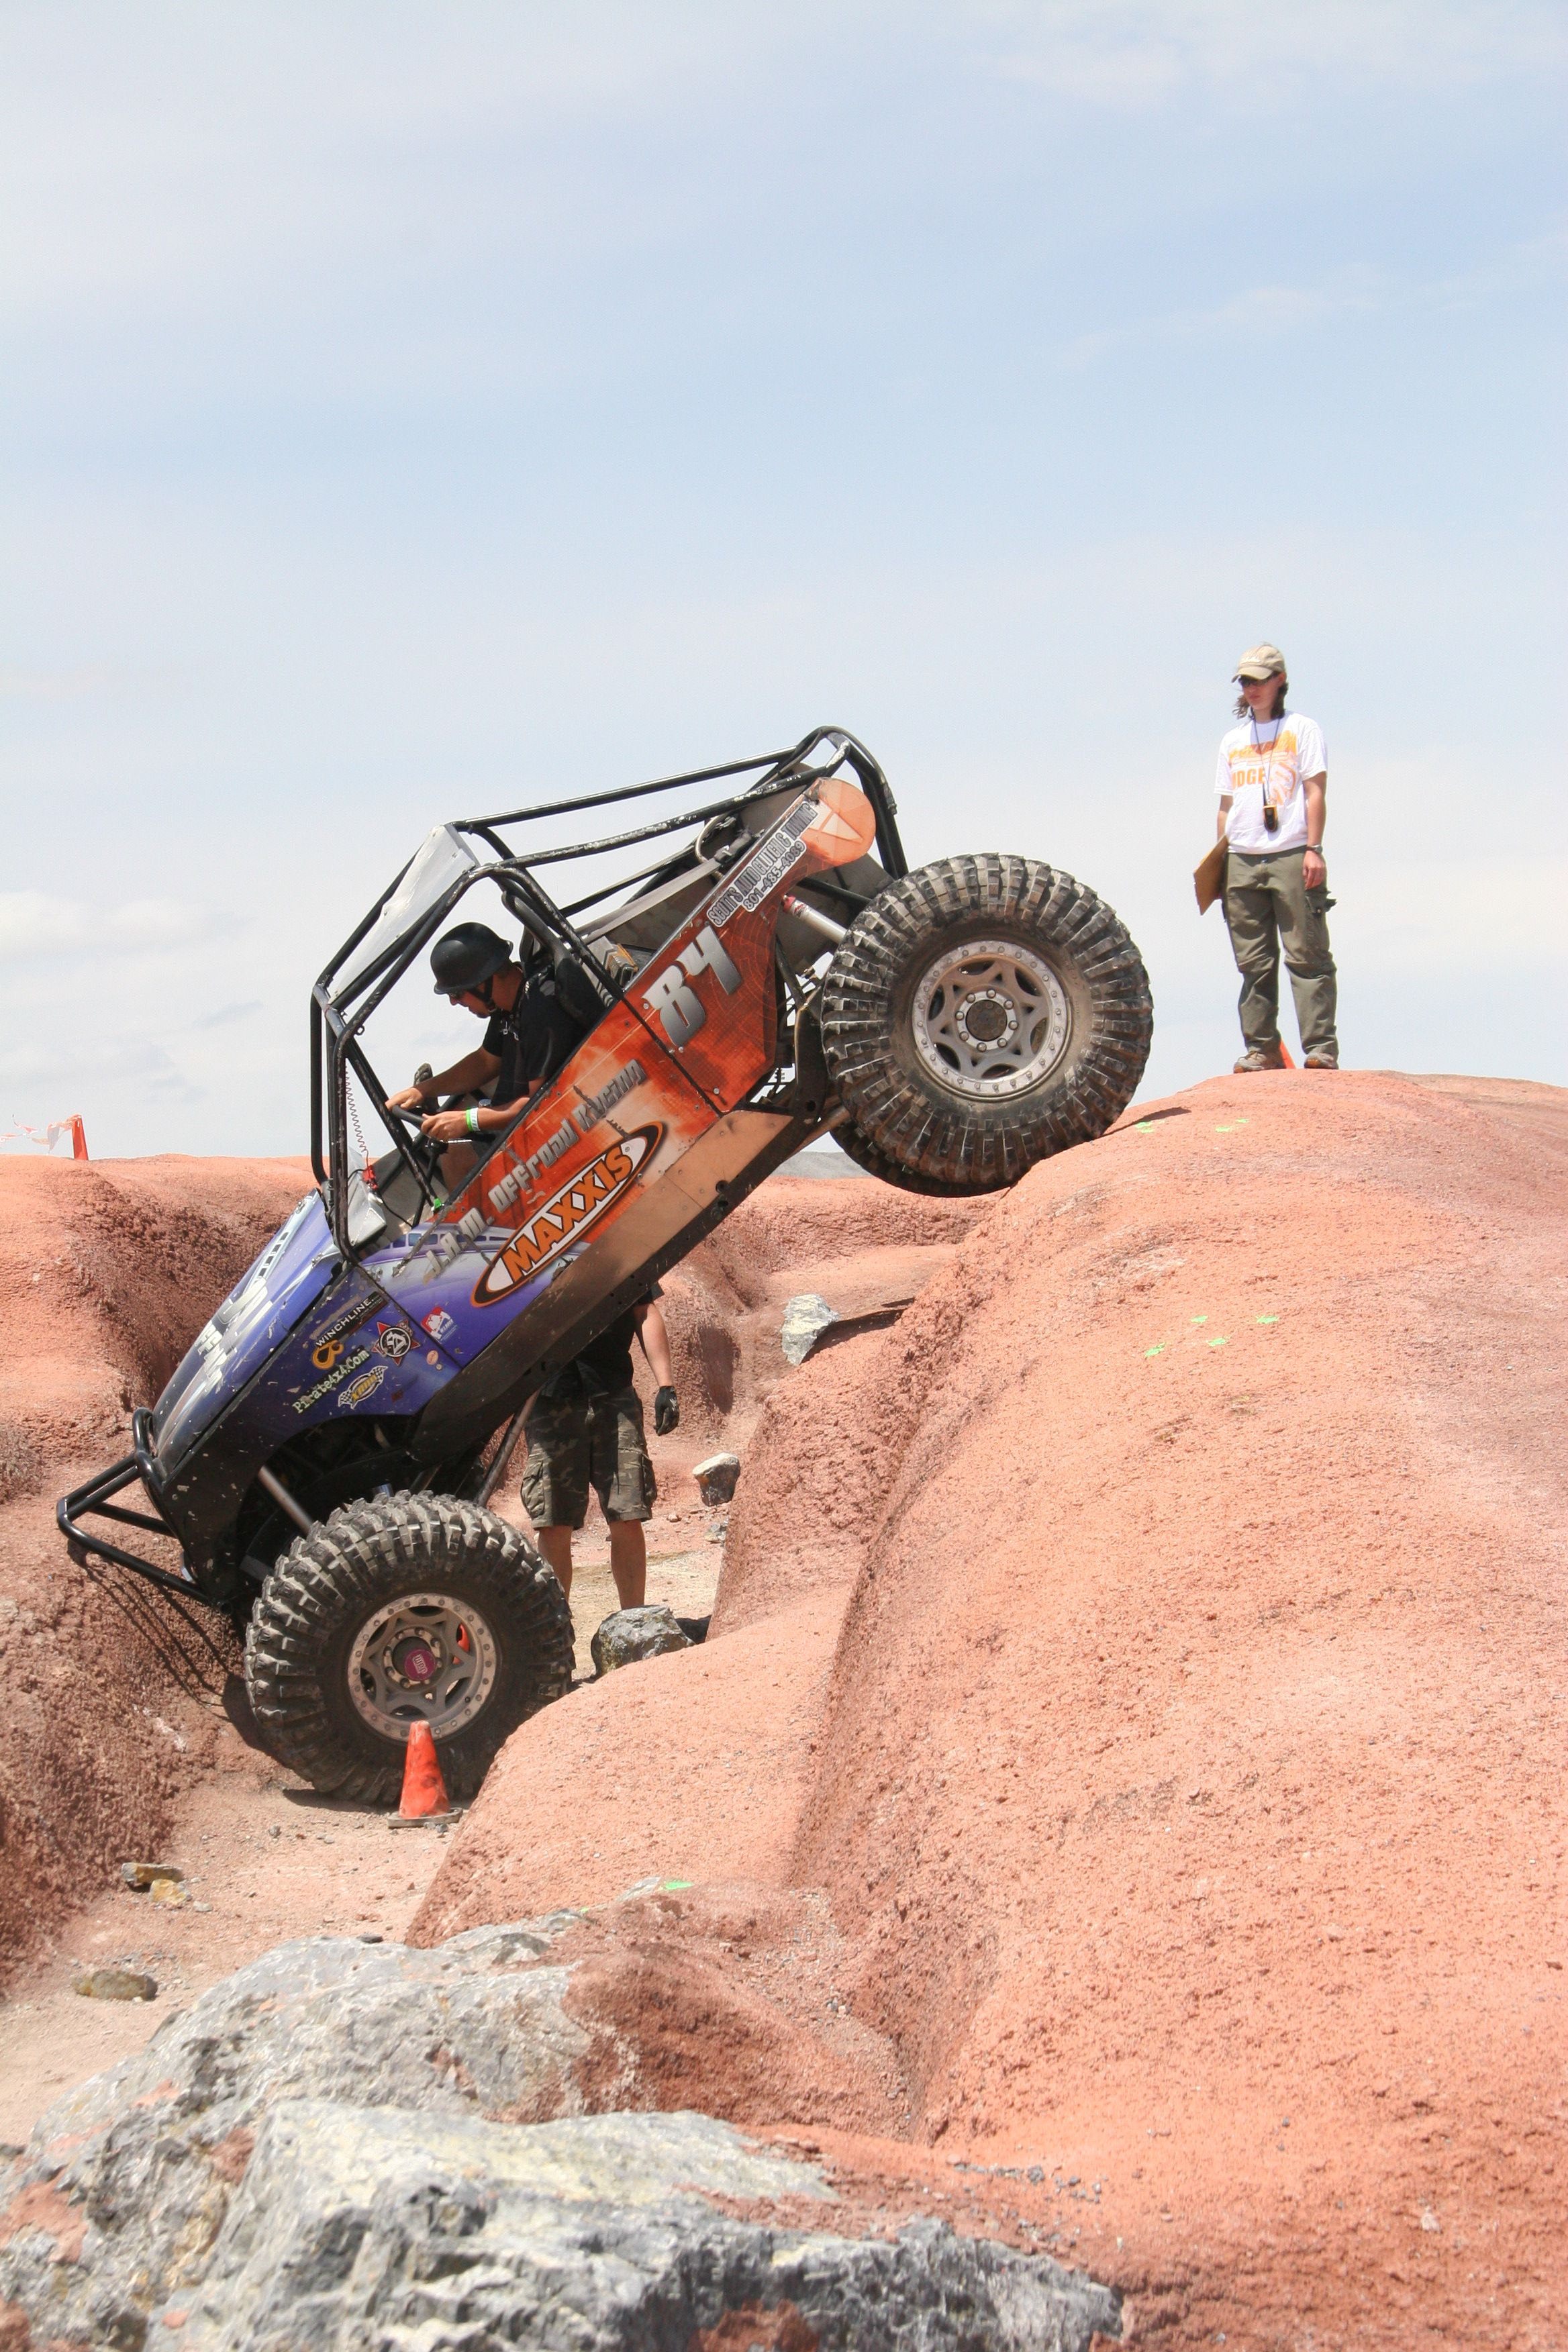 Jam Offroad Racing Wcr Photo With Images Offroad Dune Buggy Extreme Off Road Vehicles